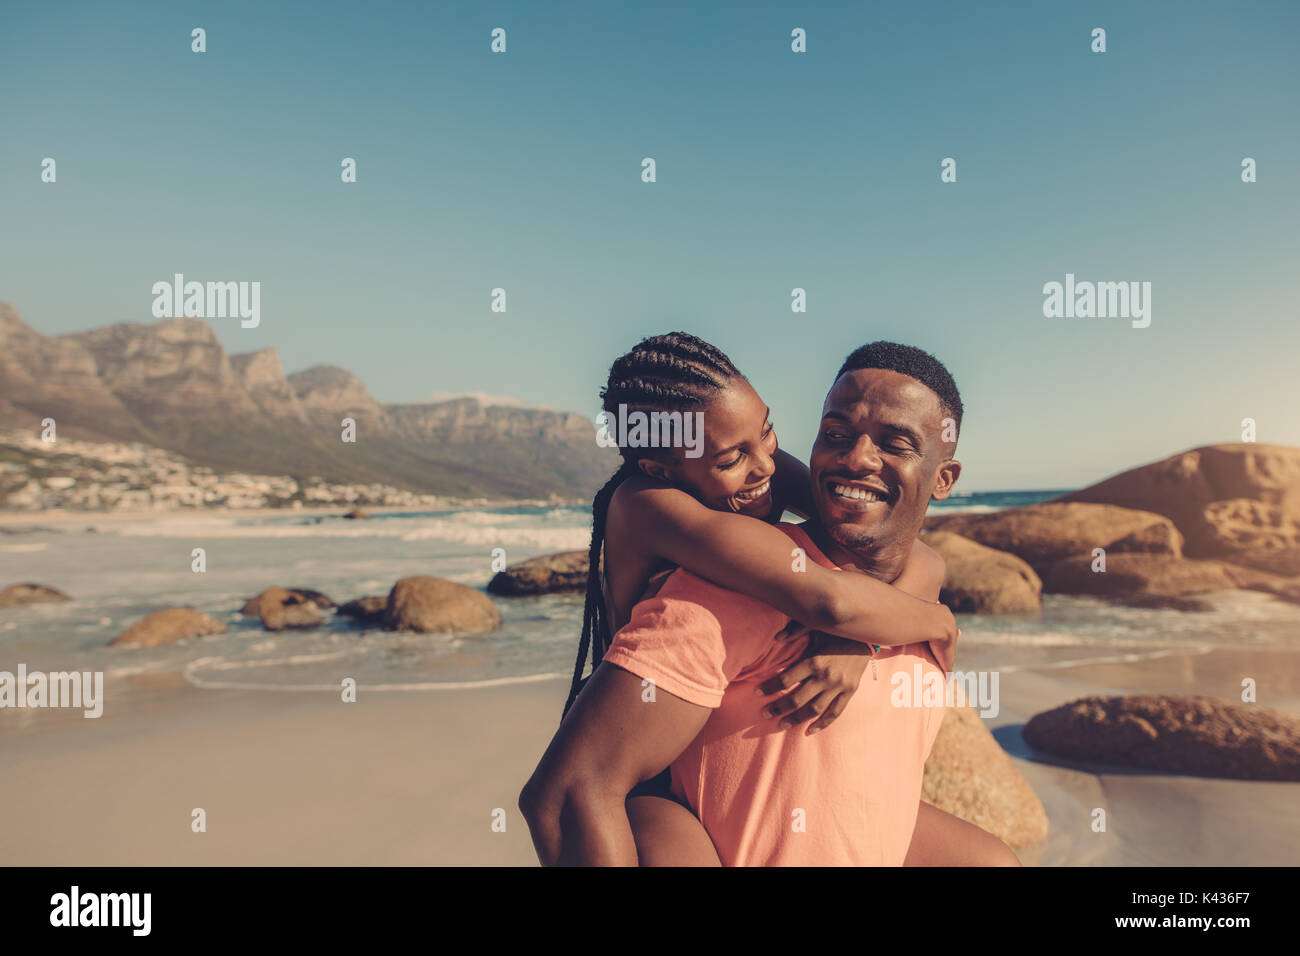 Handsome african man giving piggyback ride to his smiling girlfriend at the beach. Couple enjoying themselves at the seashore. - Stock Image